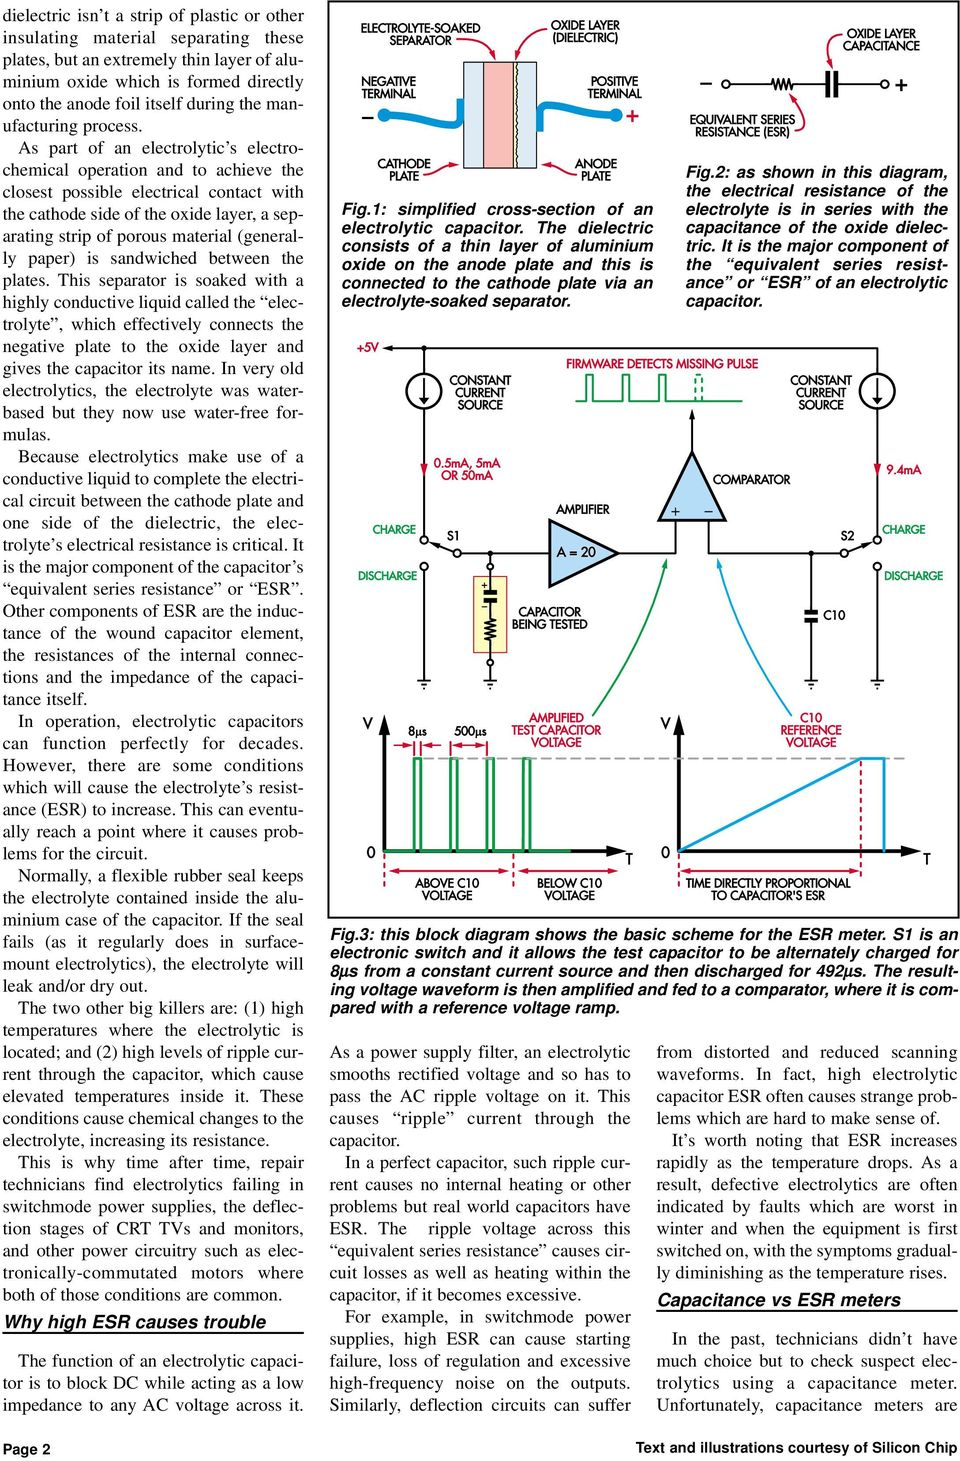 Assembly Manual Please Read Disclaimer Carefully As We Can Only Computersmpscircuitdiagrampdf6019png Part Of An Electrolytic S Electrochemical Operation And To Achieve The Closest Possible Electrical Contact